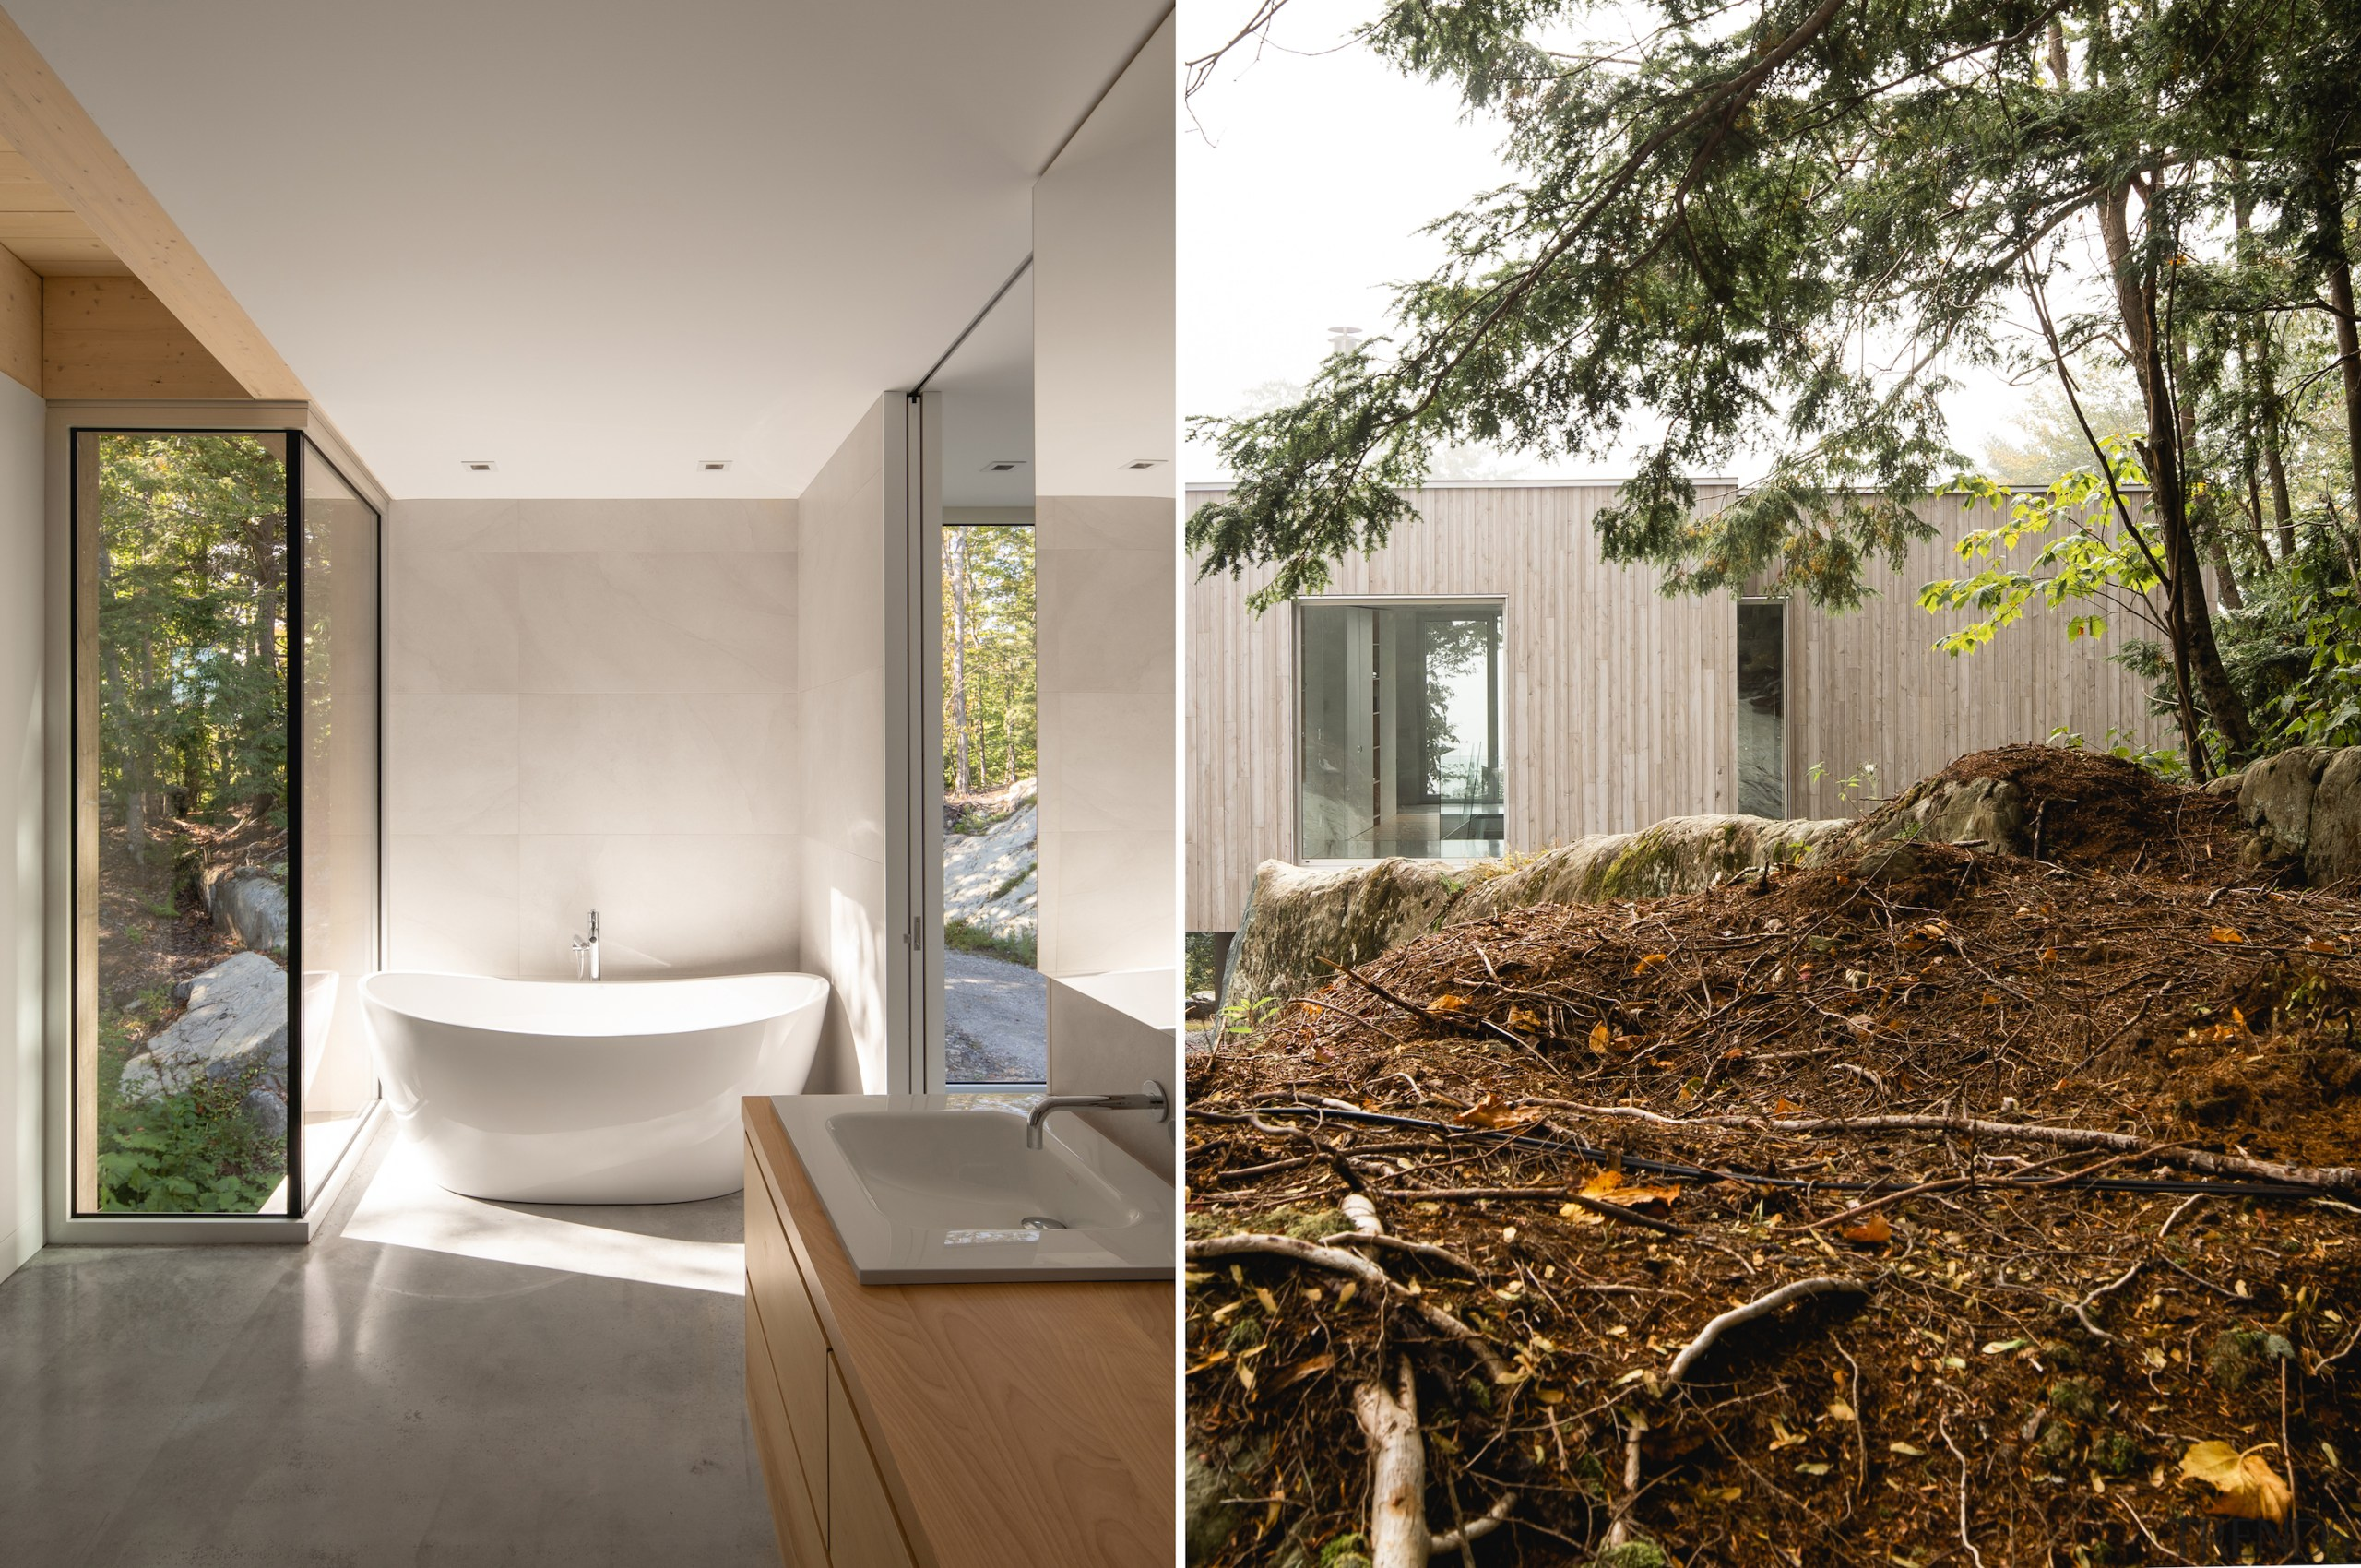 Soaking in nature is easy in the home's